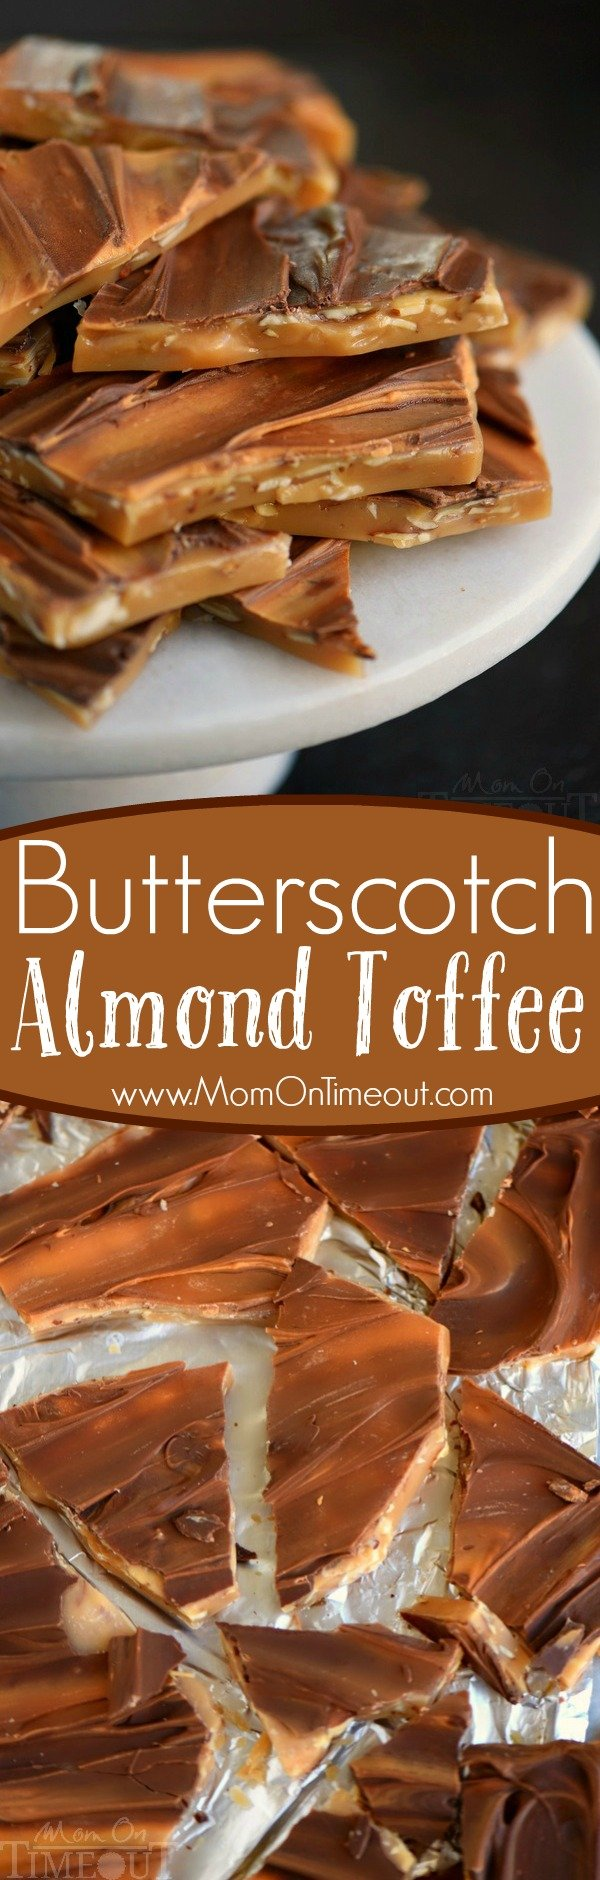 Get your sweet tooth ready for this outrageous Butterscotch Almond Toffee! Creamy, buttery, crunchy, melt in your mouth awesomeness!